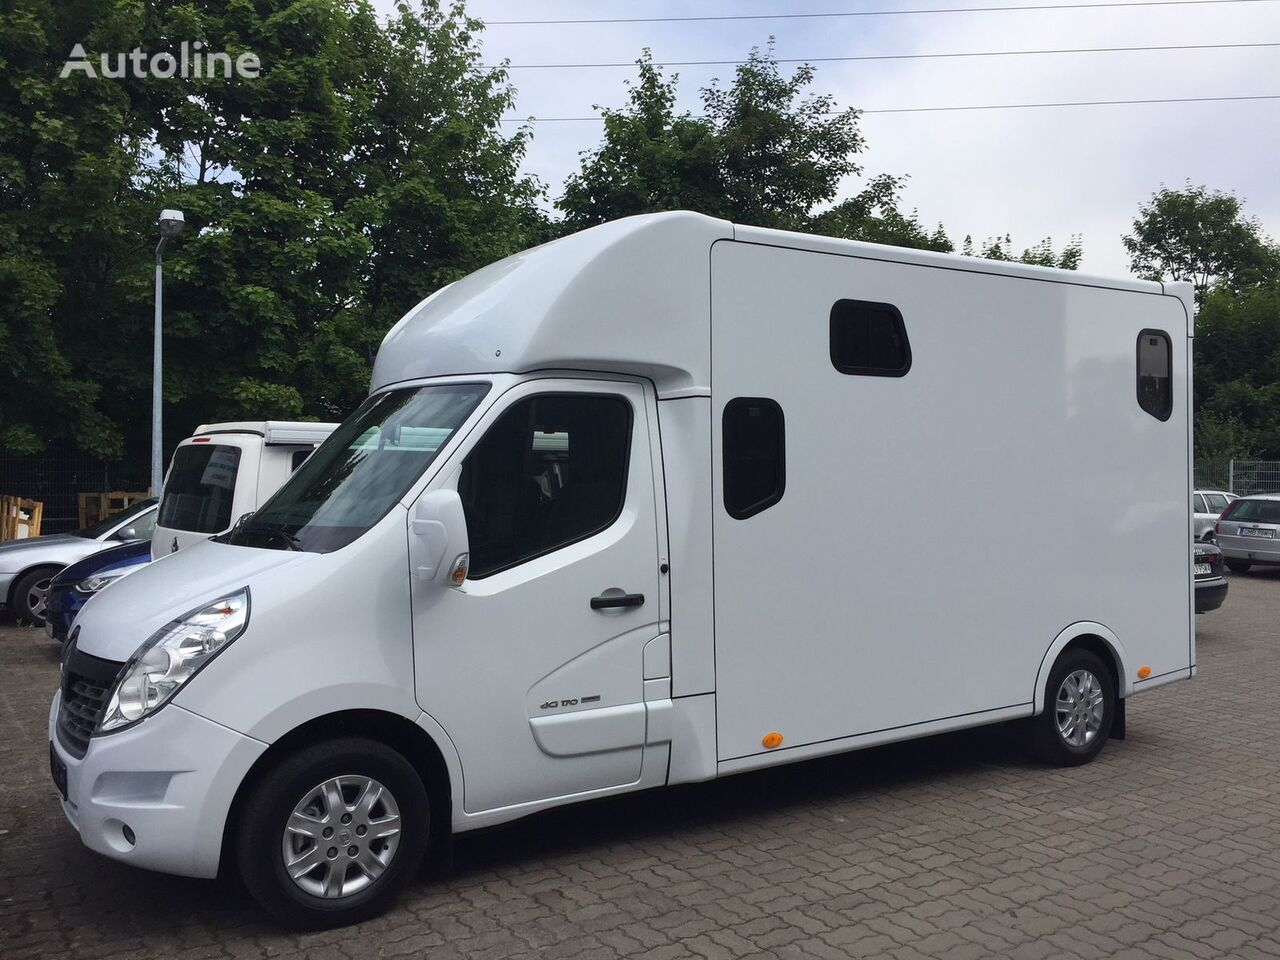 RENAULT Master 170,2 horse 5 people, 13500km, LAST ONE IN THAT PRICE! Pferdetransporter